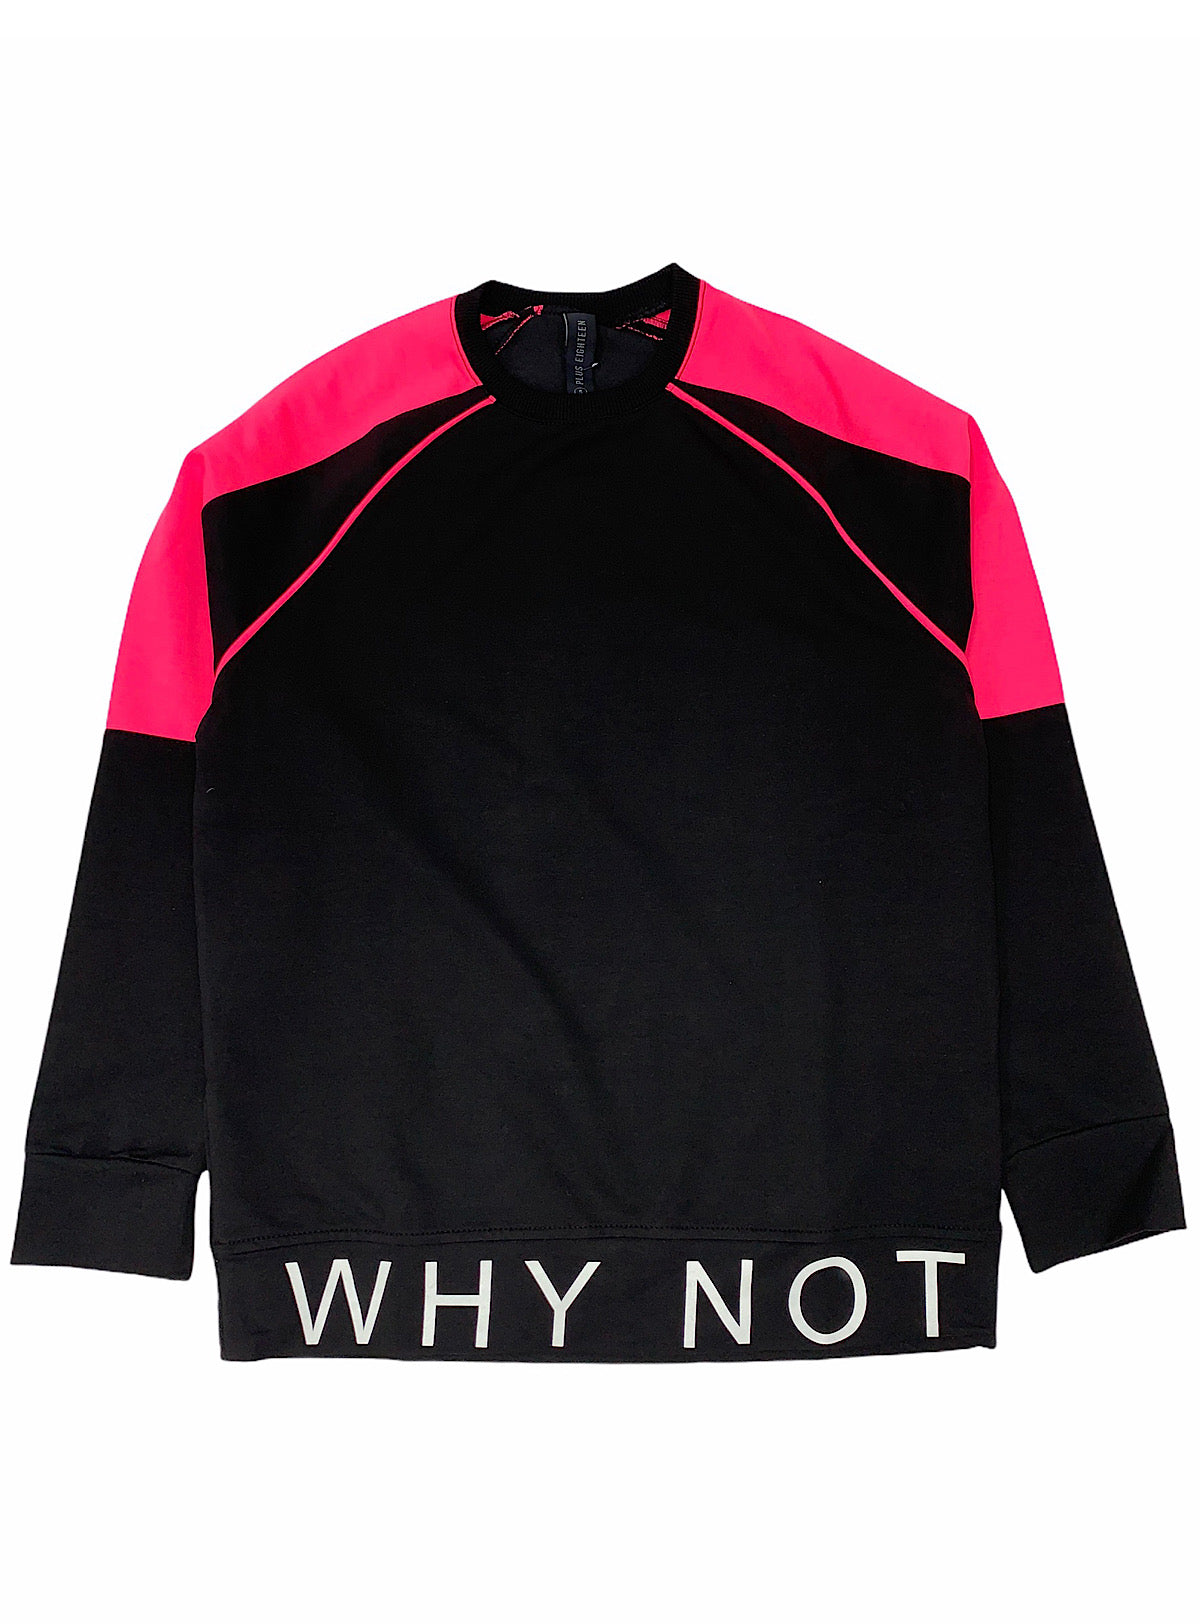 Buyer's Choice Sweatshirt - Why Not - Black And Neon Pink - ST-6503